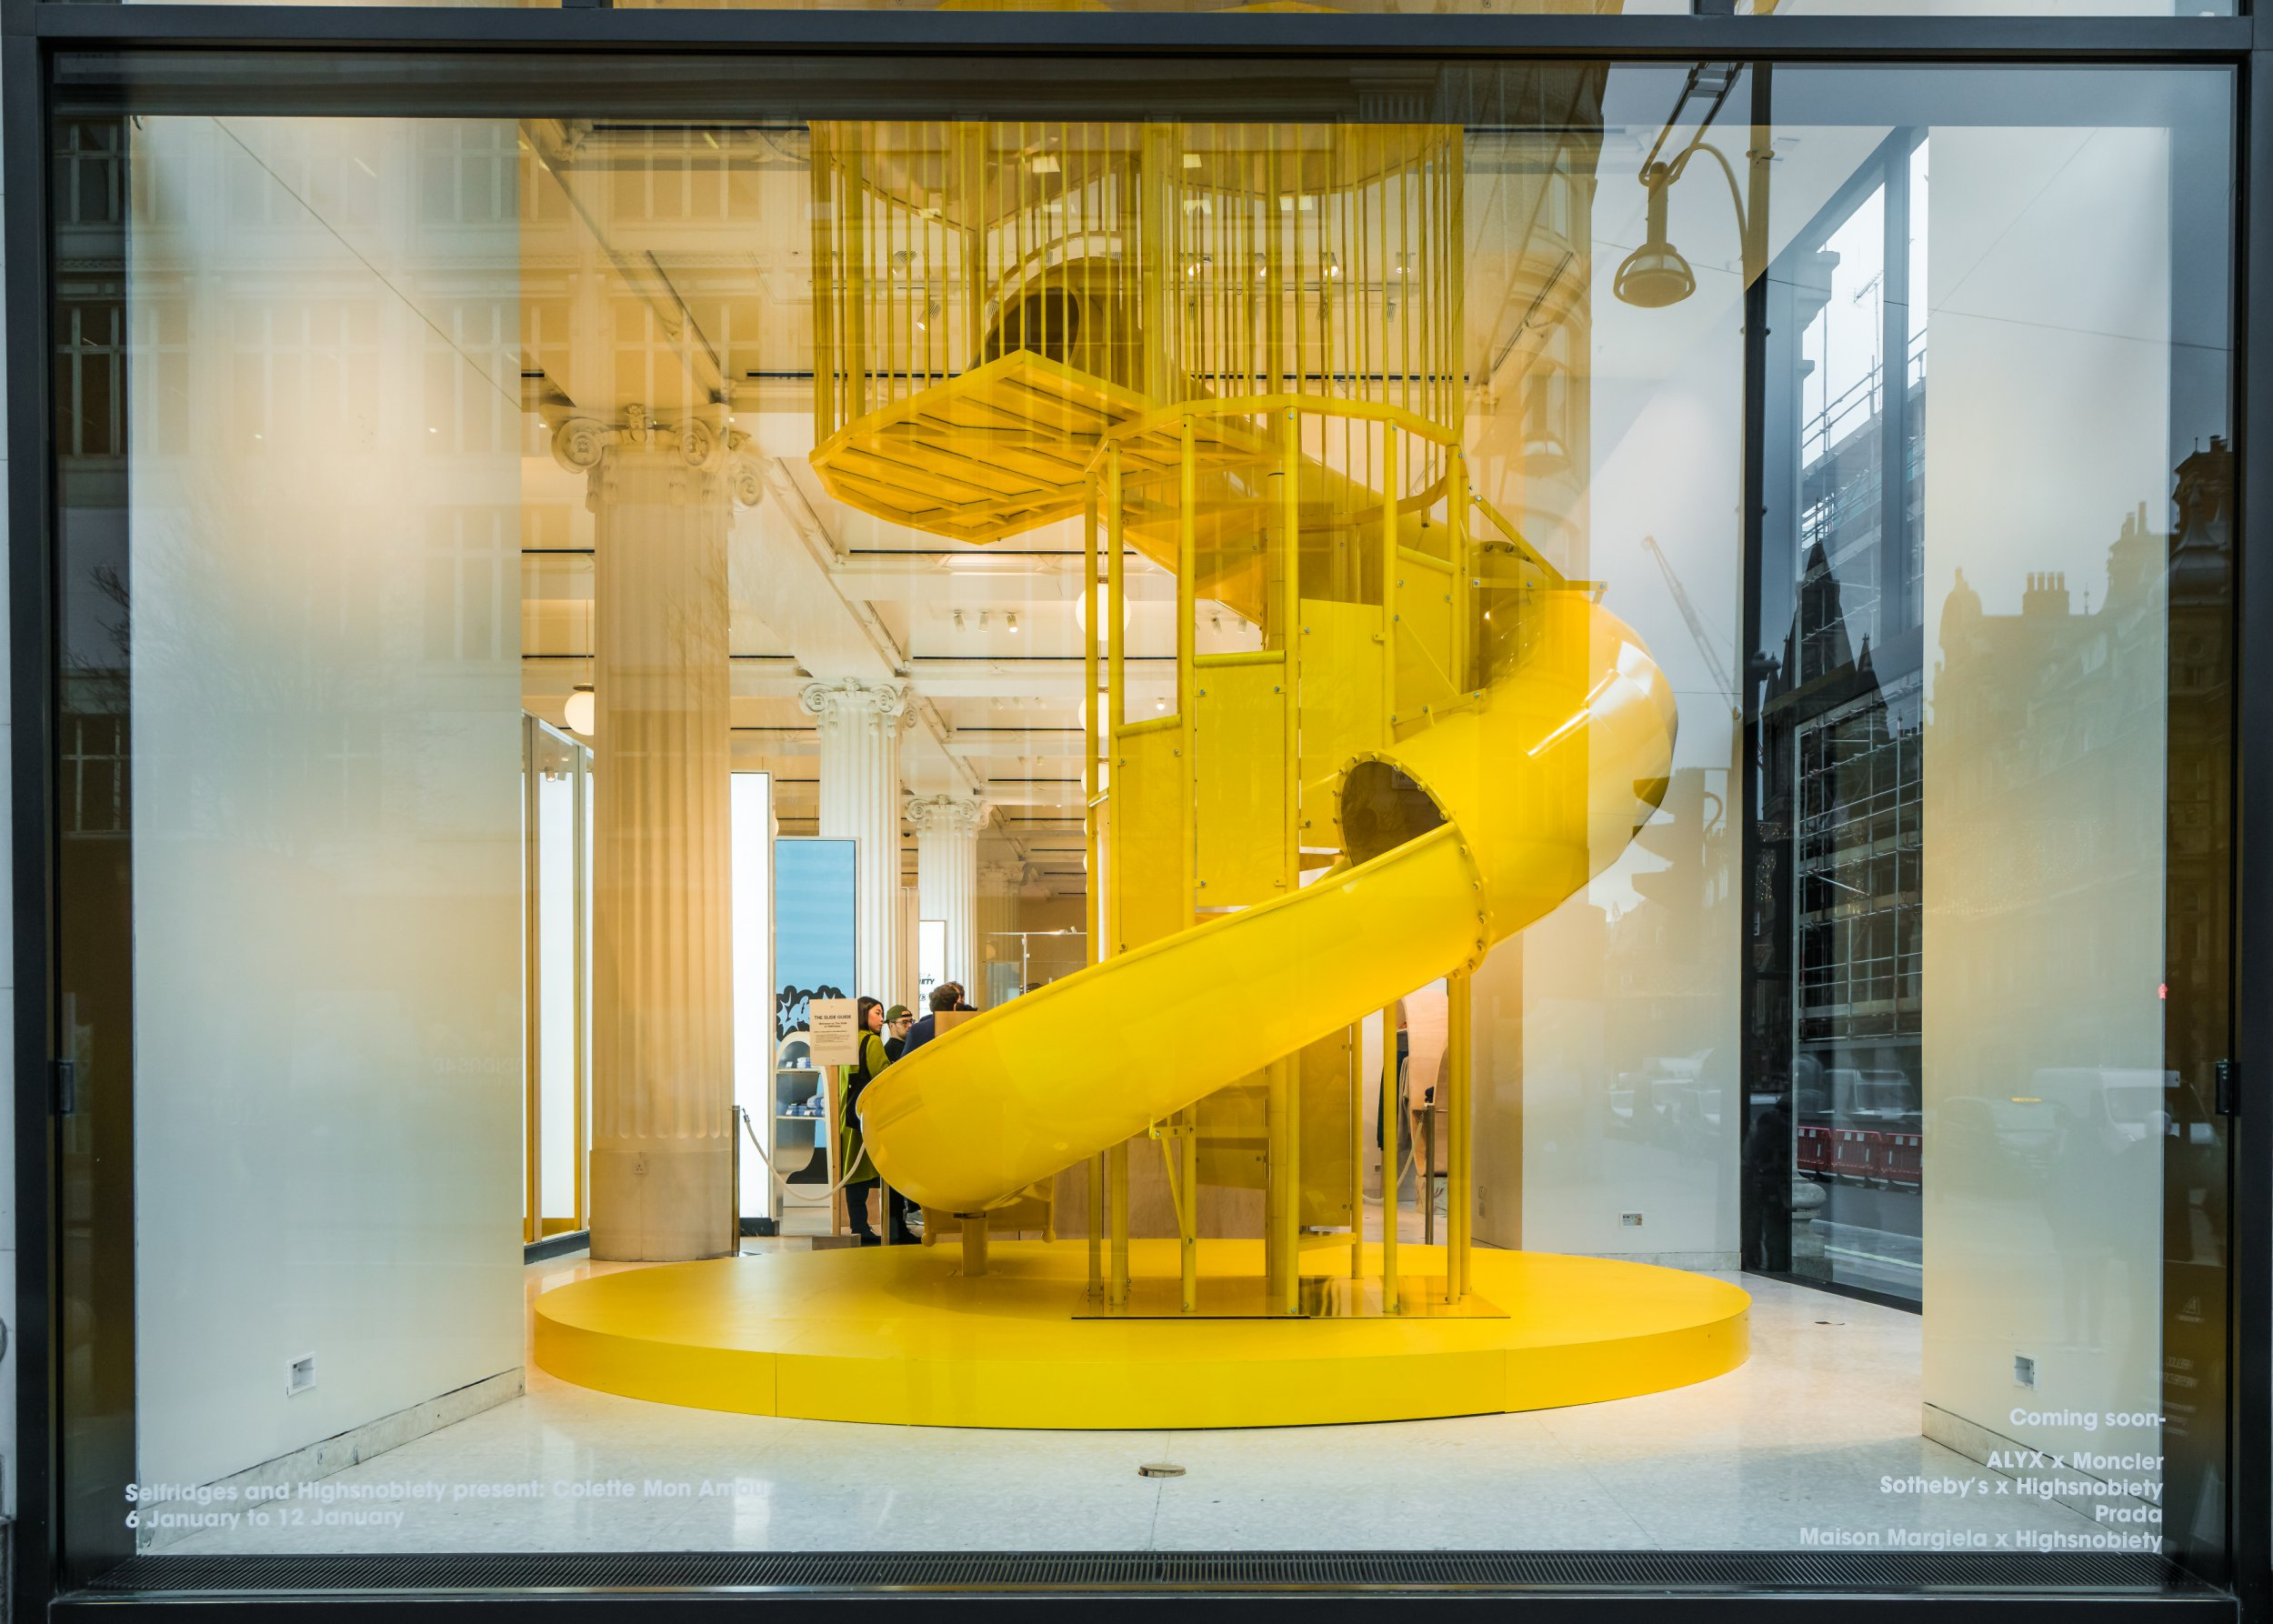 selfridges launched ethical coffee shop with a giant yellow slide